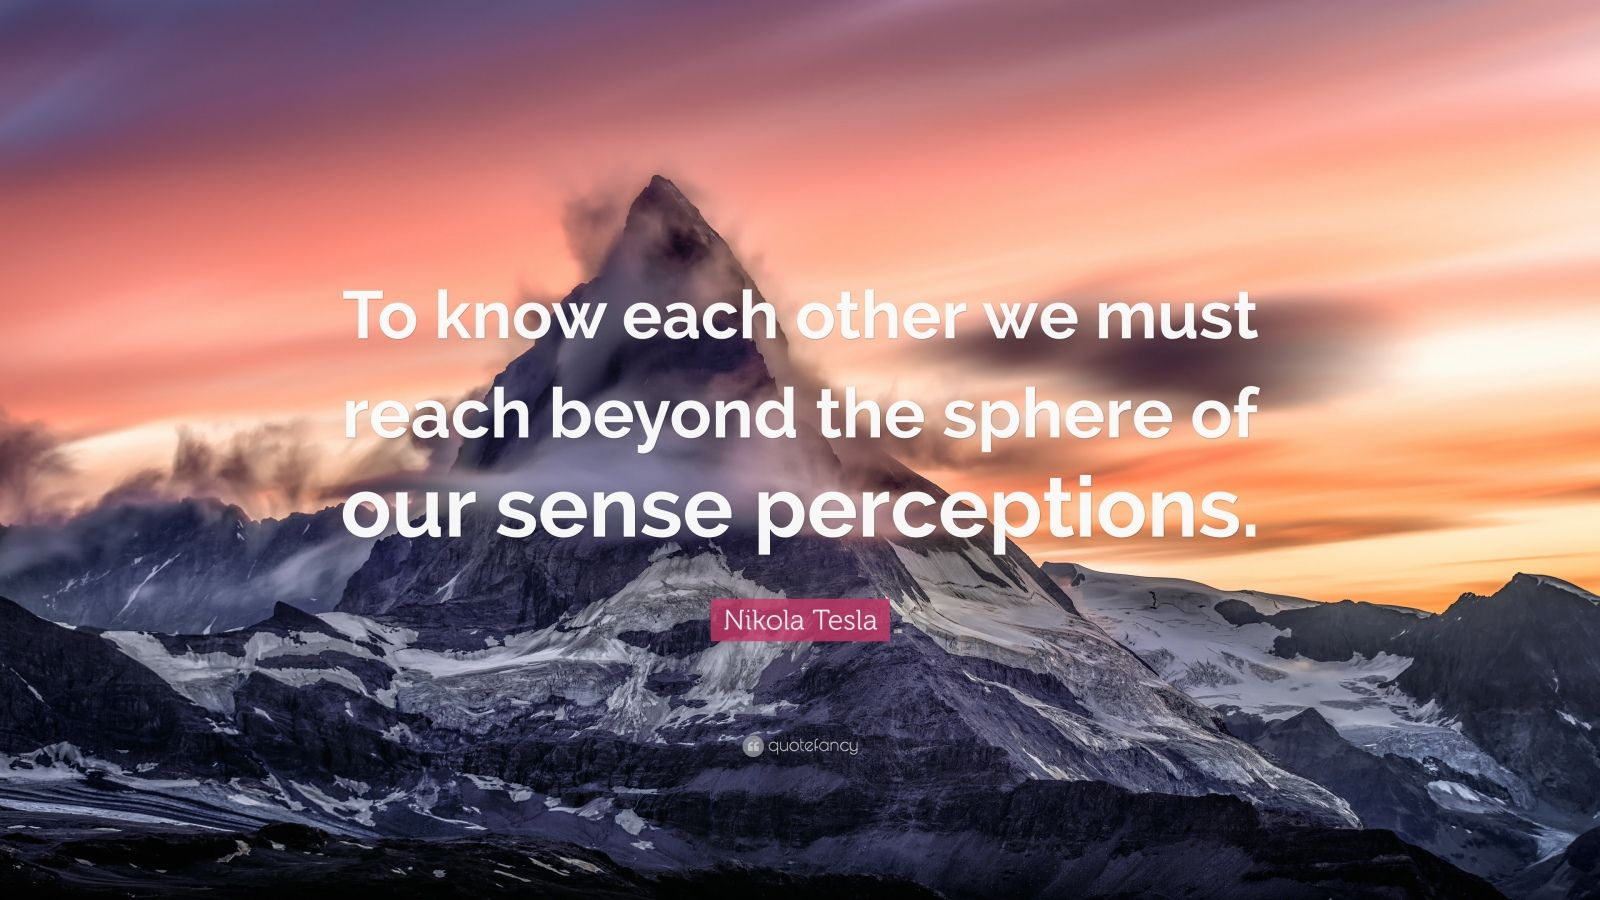 """Nikola Tesla Quote: """"To know each other we must reach beyond the sphere of our sense perceptions."""""""